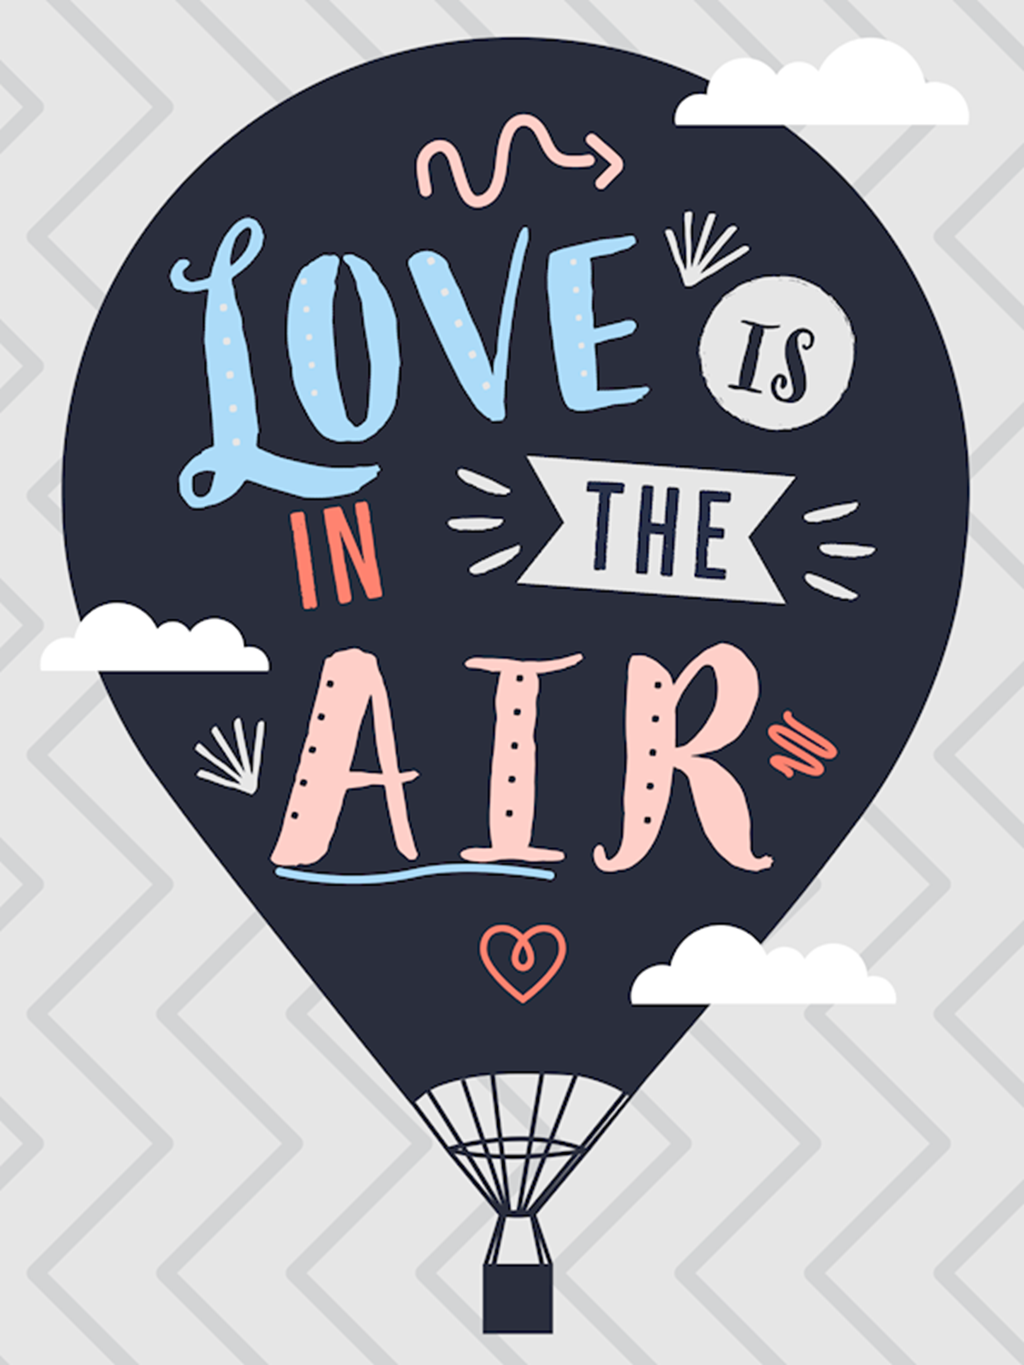 Poster: Love is in the air - Digital Art